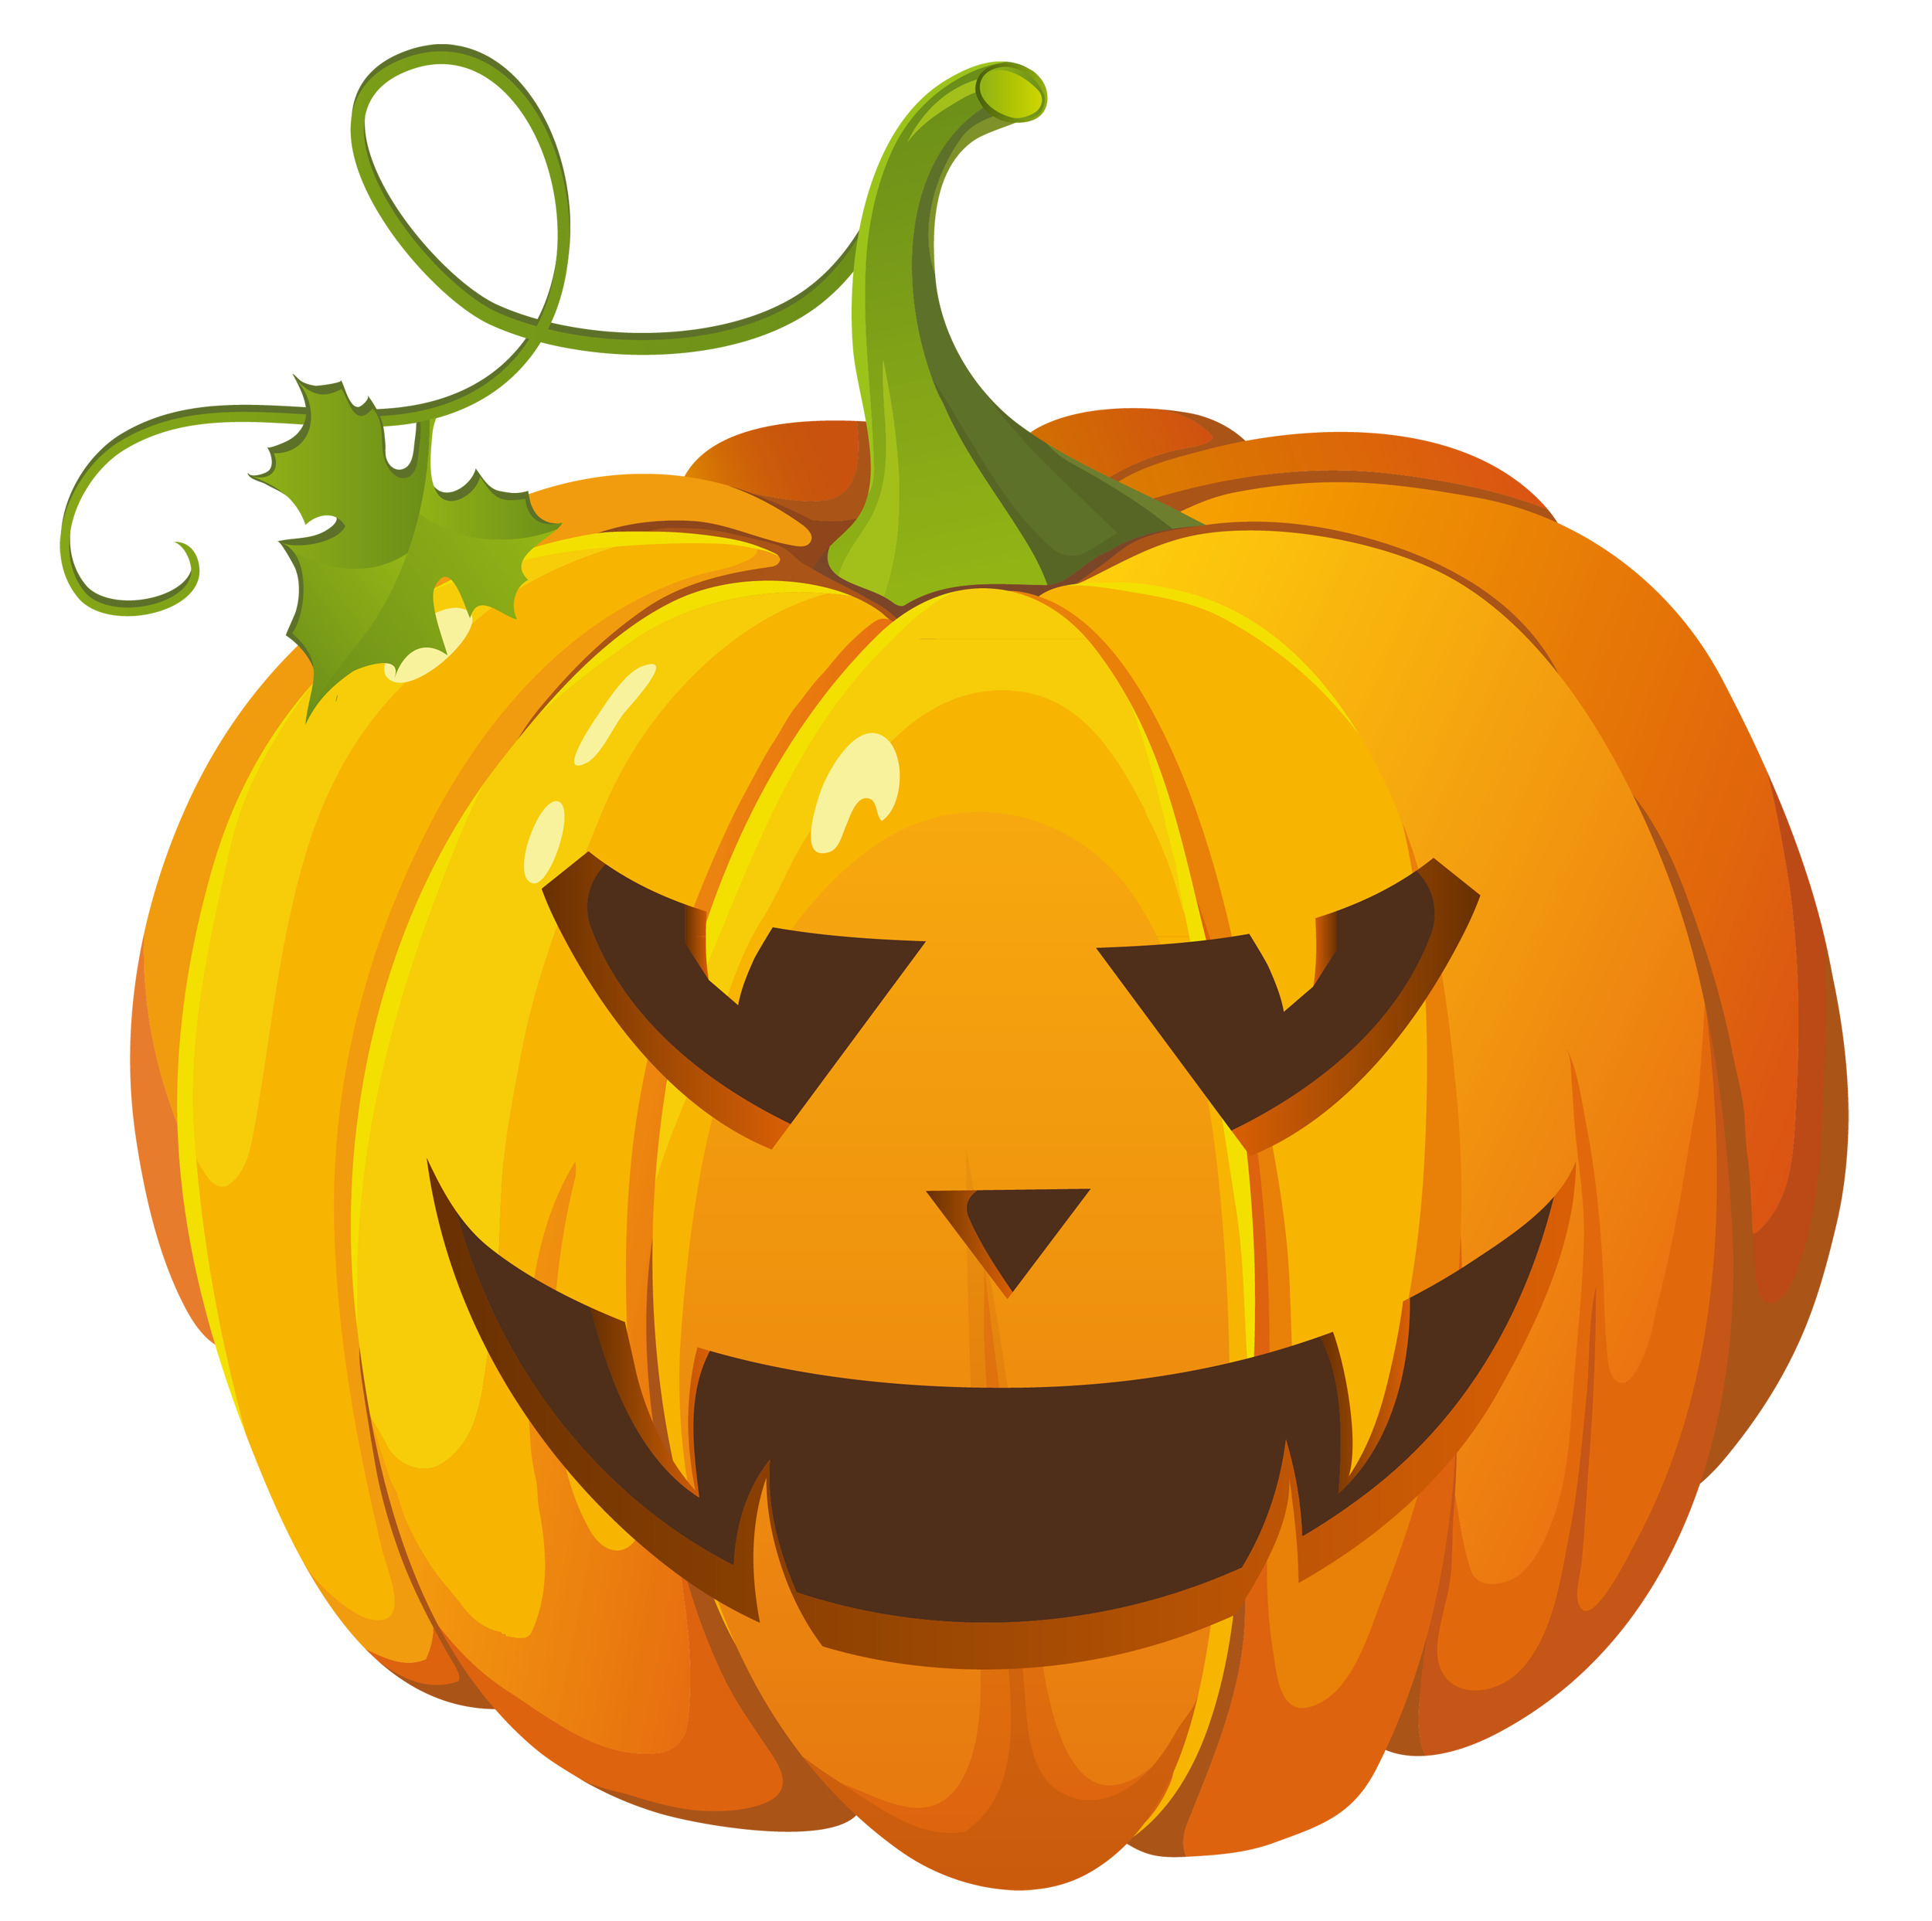 Halloween clipart gate. Cute pumpkin panda free